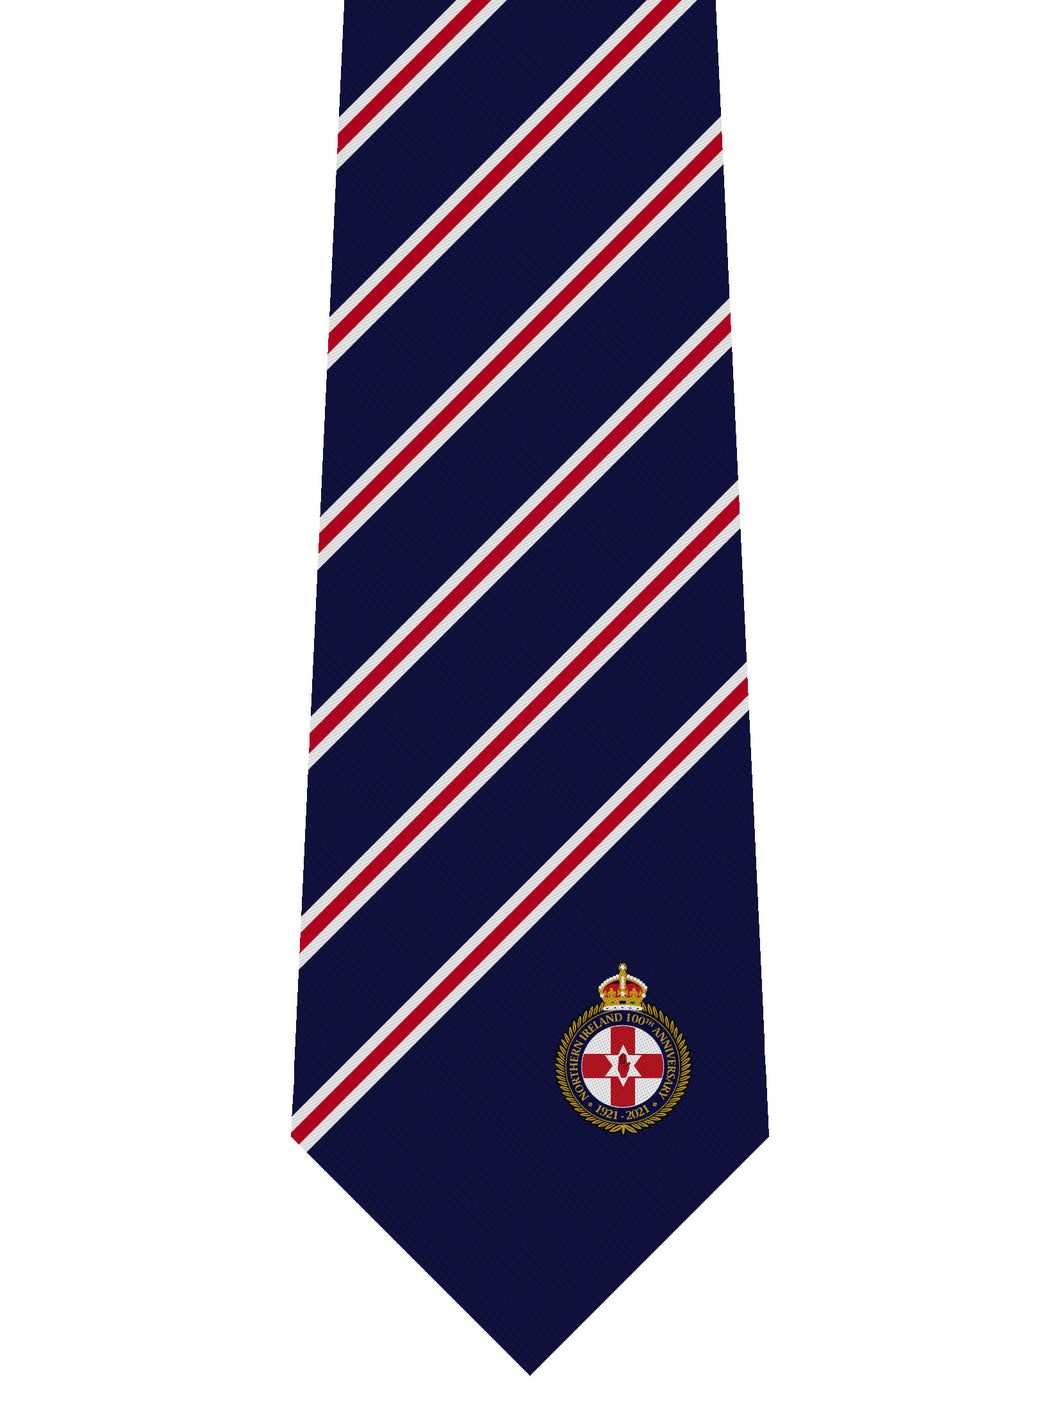 Northern Ireland 100th Anniversary Commemorative Tie